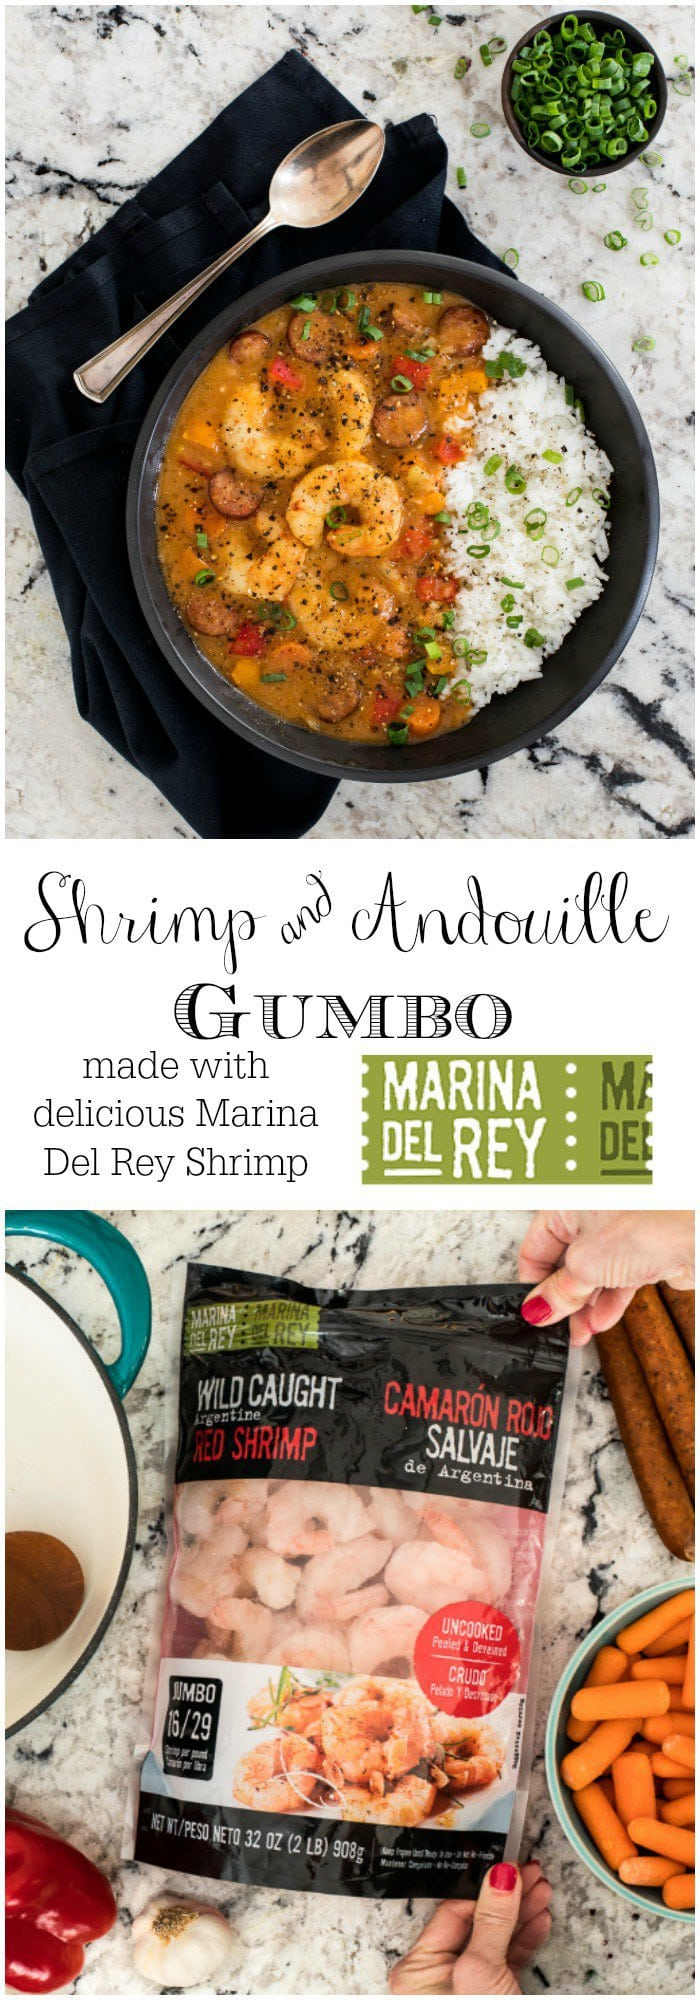 Perfect for entertaining, this Shrimp and Andouille Gumbo is loaded with succulent shrimp, spicy sausage and lots of fresh veggies!